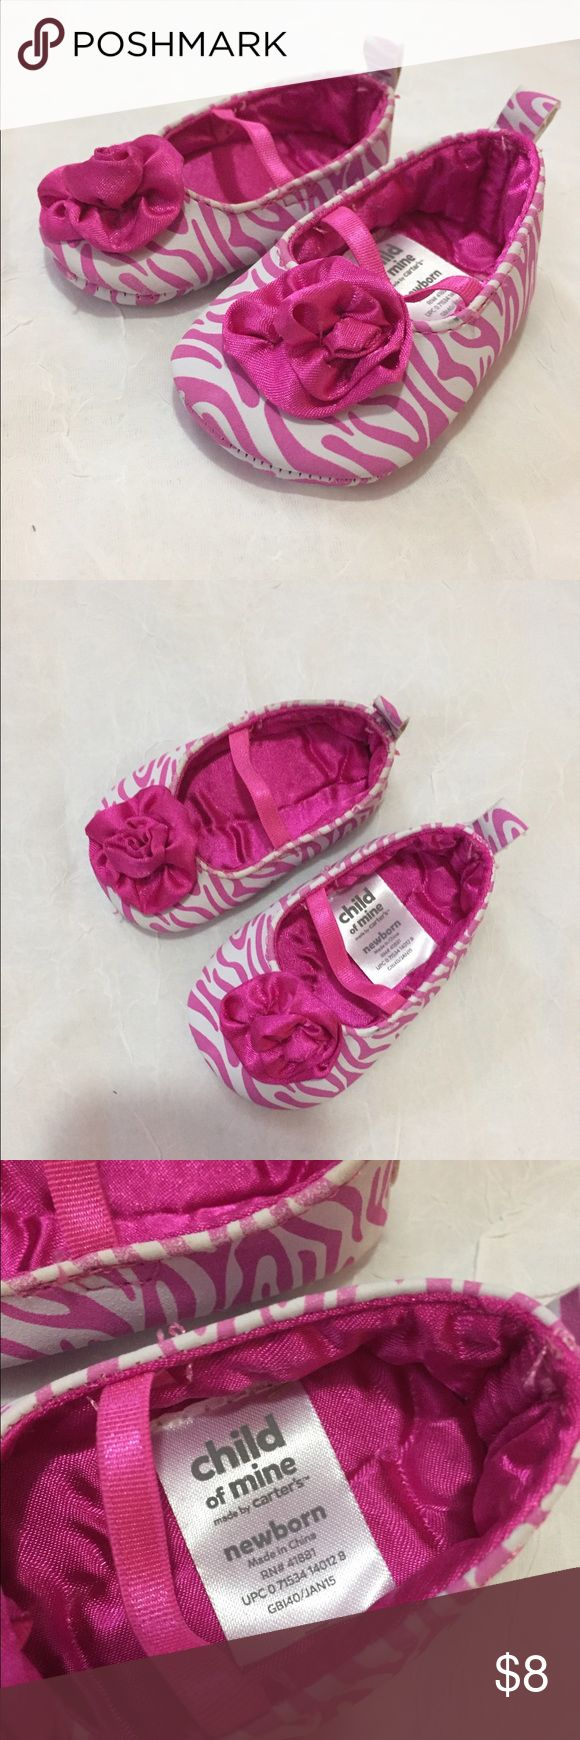 Carter's newborn pink zebra shoes Carter's newborn girl's pink zebra shoes Carter's Shoes Baby & Walker